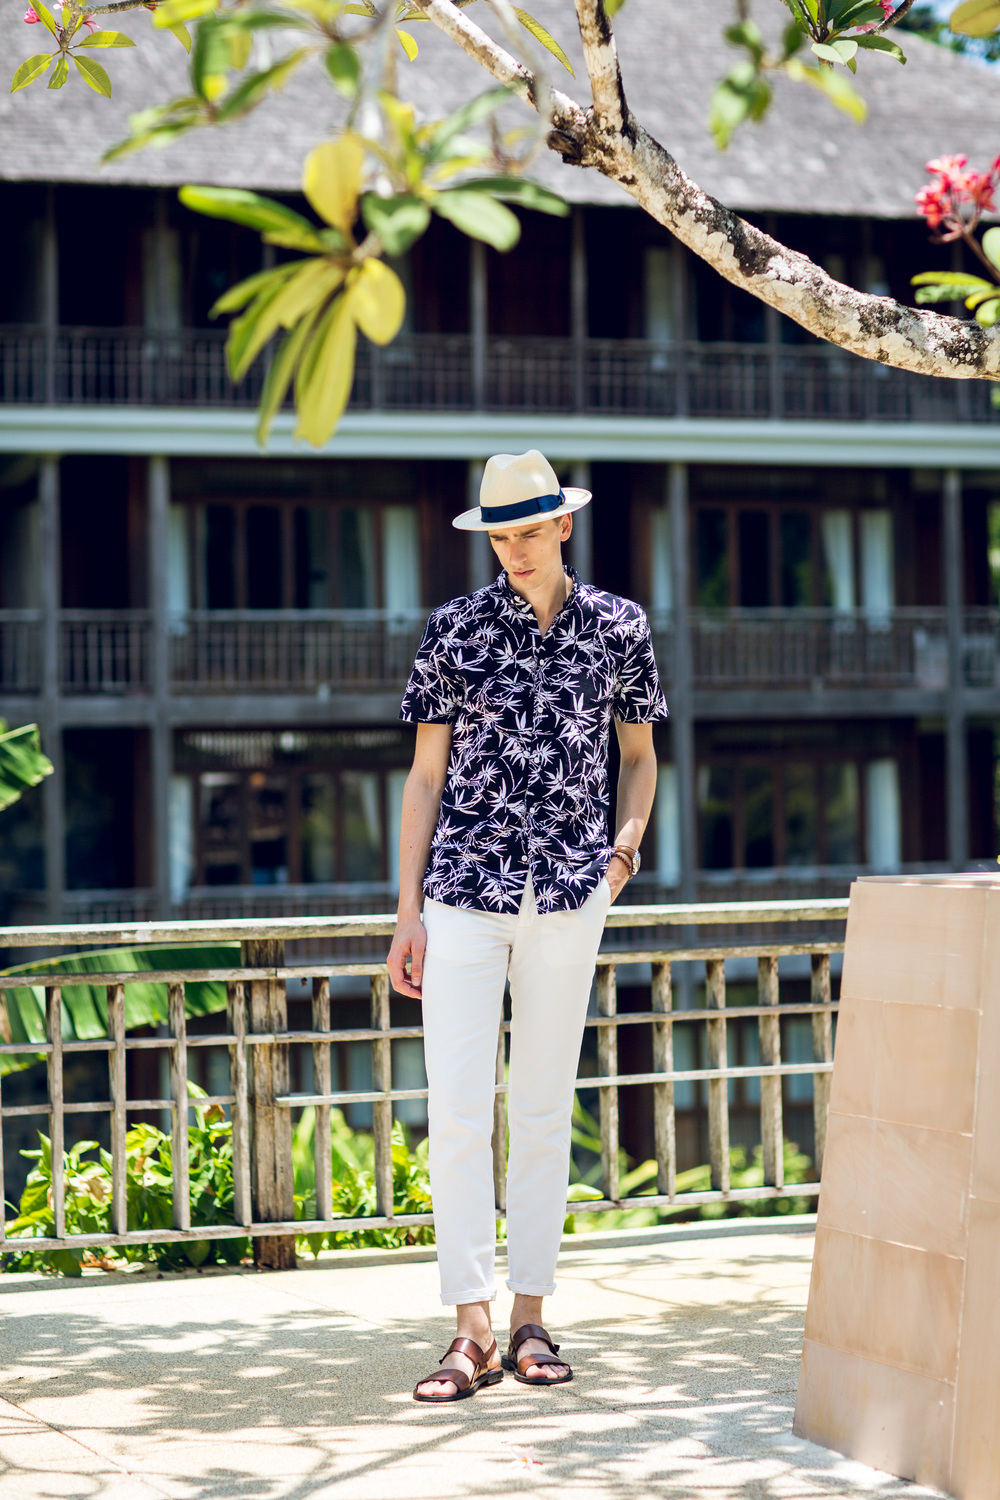 Resort Chic - Wearing a Borsalino Panama hat, H&M palm printed shirt, GANT trousers and leather sandals.